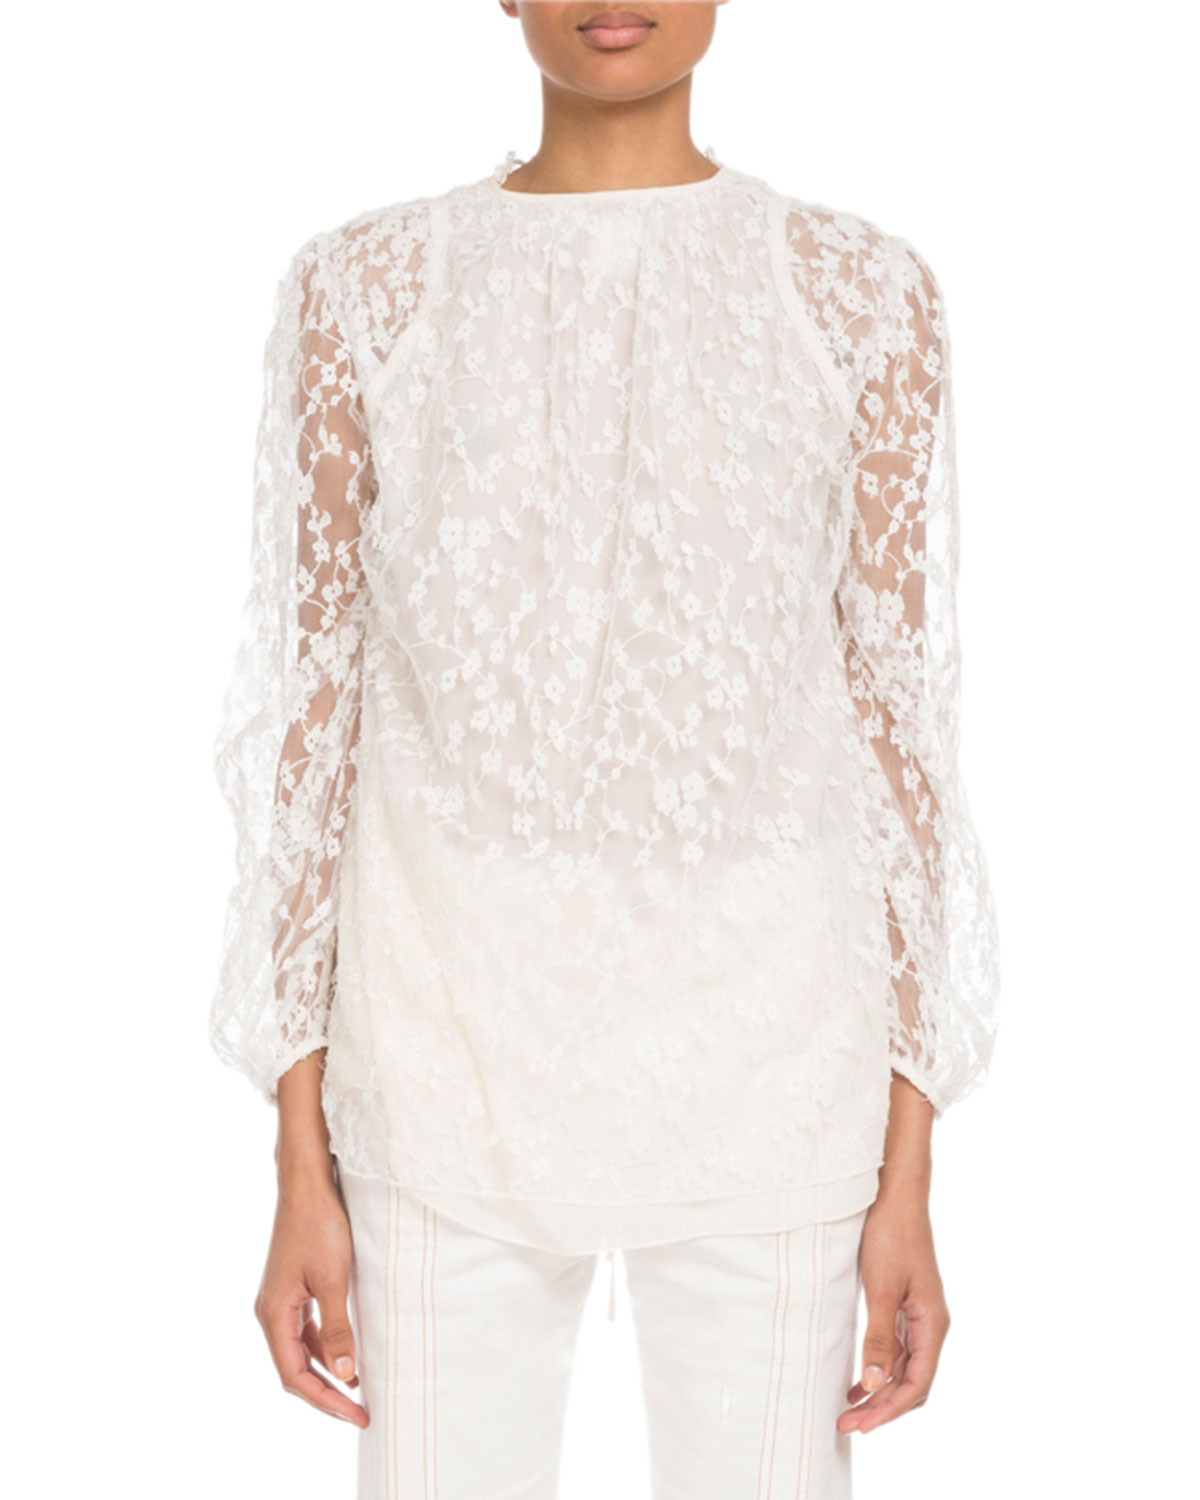 ab2f8ee3916513 Chloe Long-Sleeve Tie-Neck Floral-Lace Blouse   Neiman Marcus